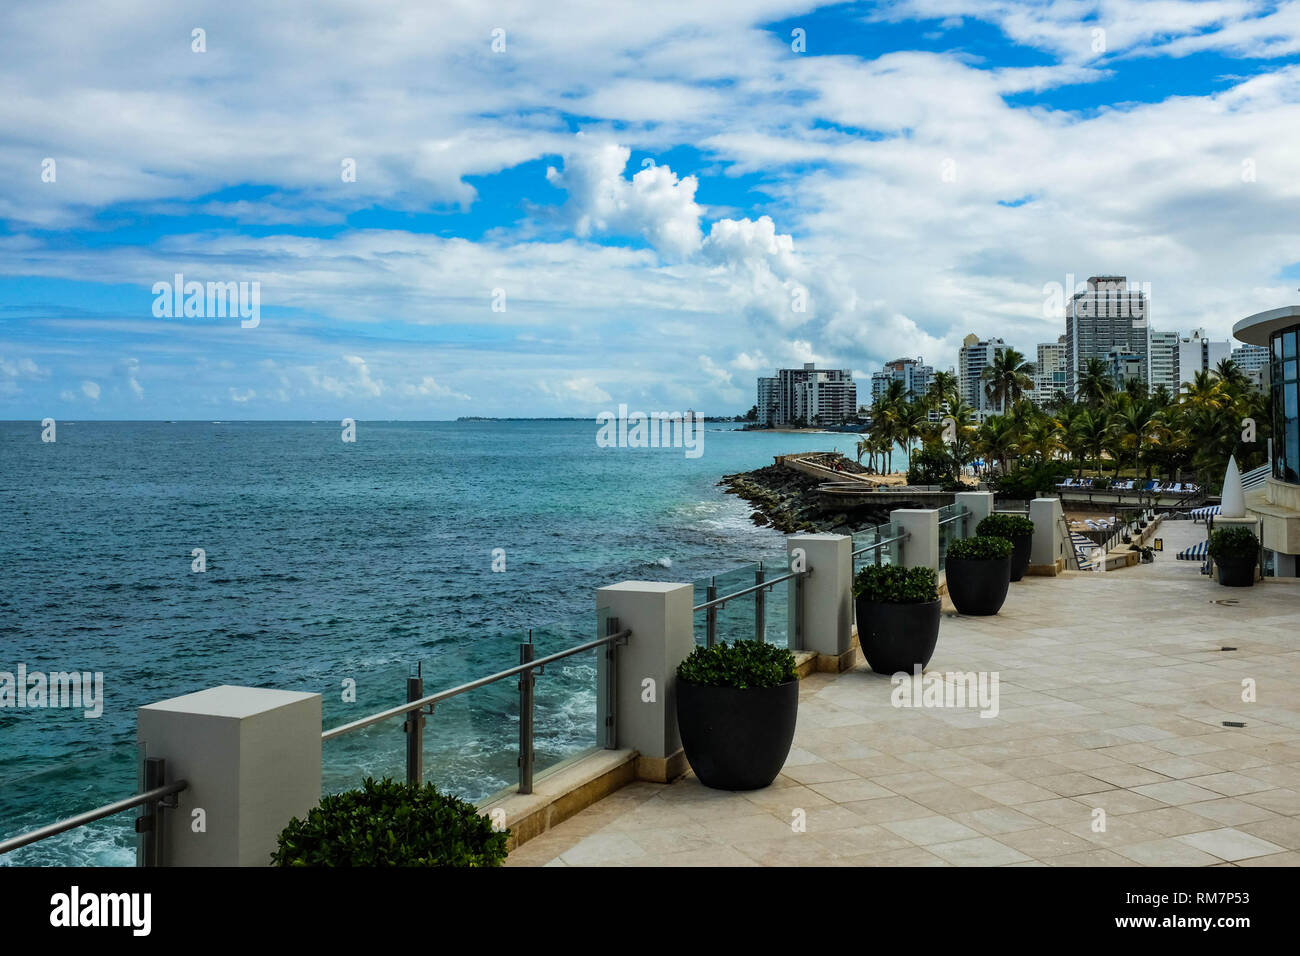 Umbrella Street is seen in San Juan, Puerto Rico above Fortaleza Street in the Old Town Section of the city.  It is close to the cruise terminal. - Stock Image